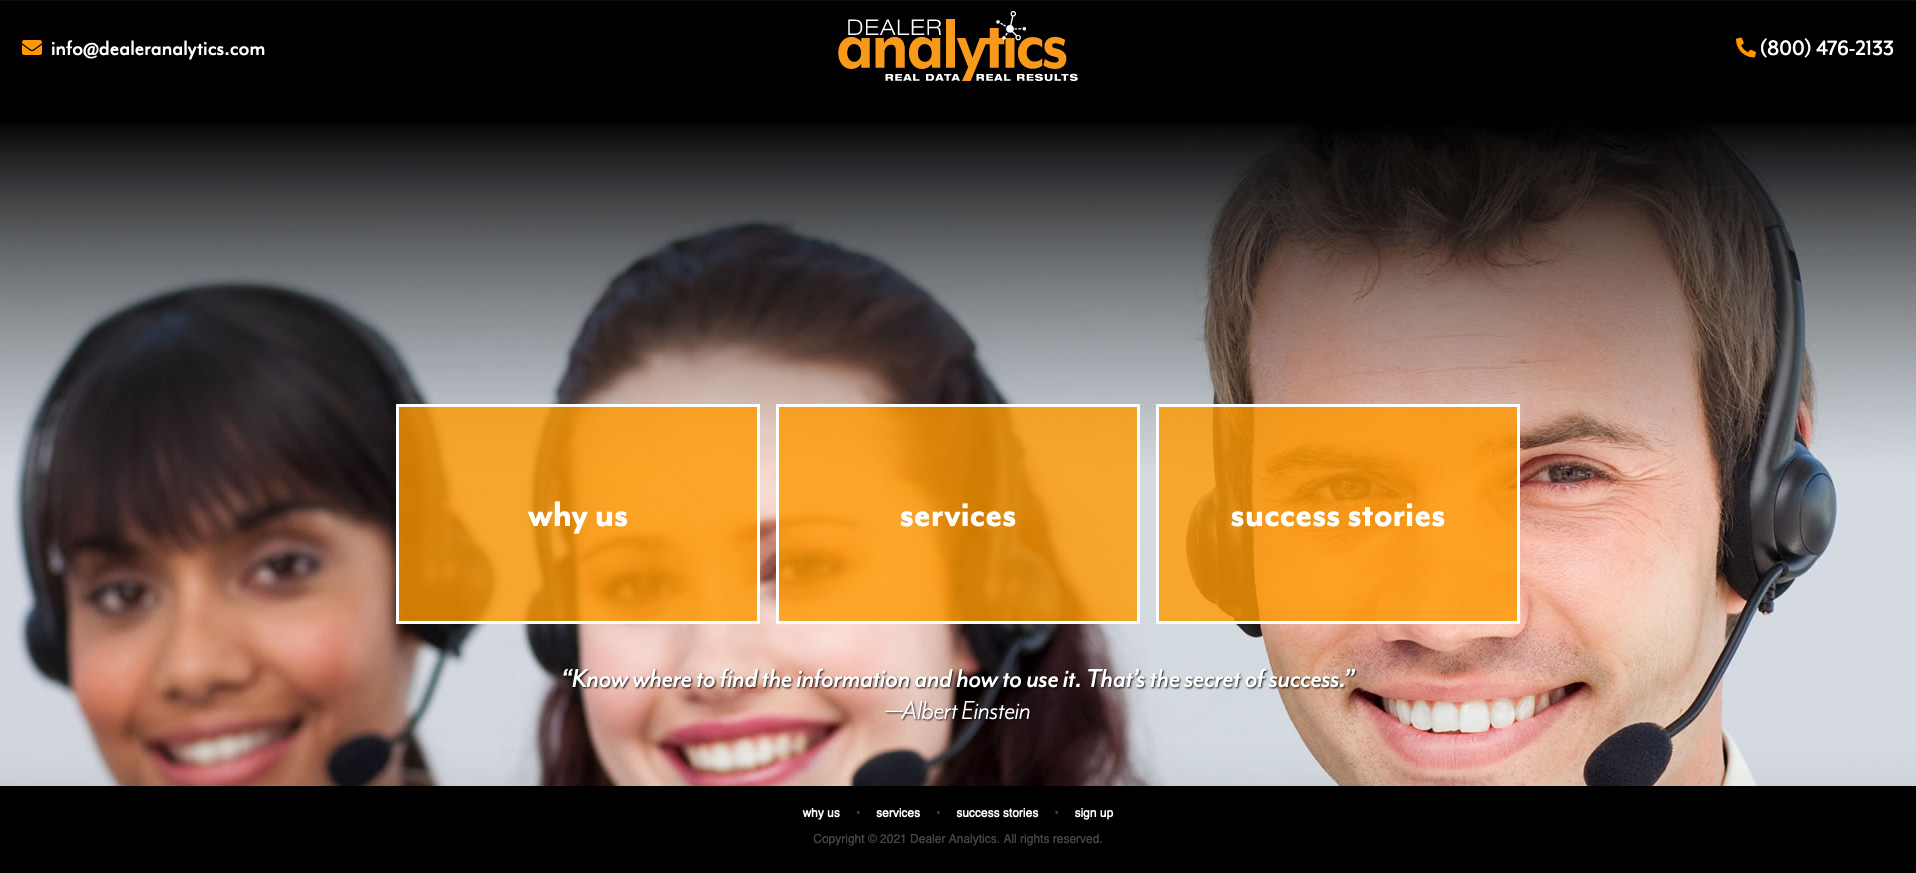 Home page for Dealer Analytics